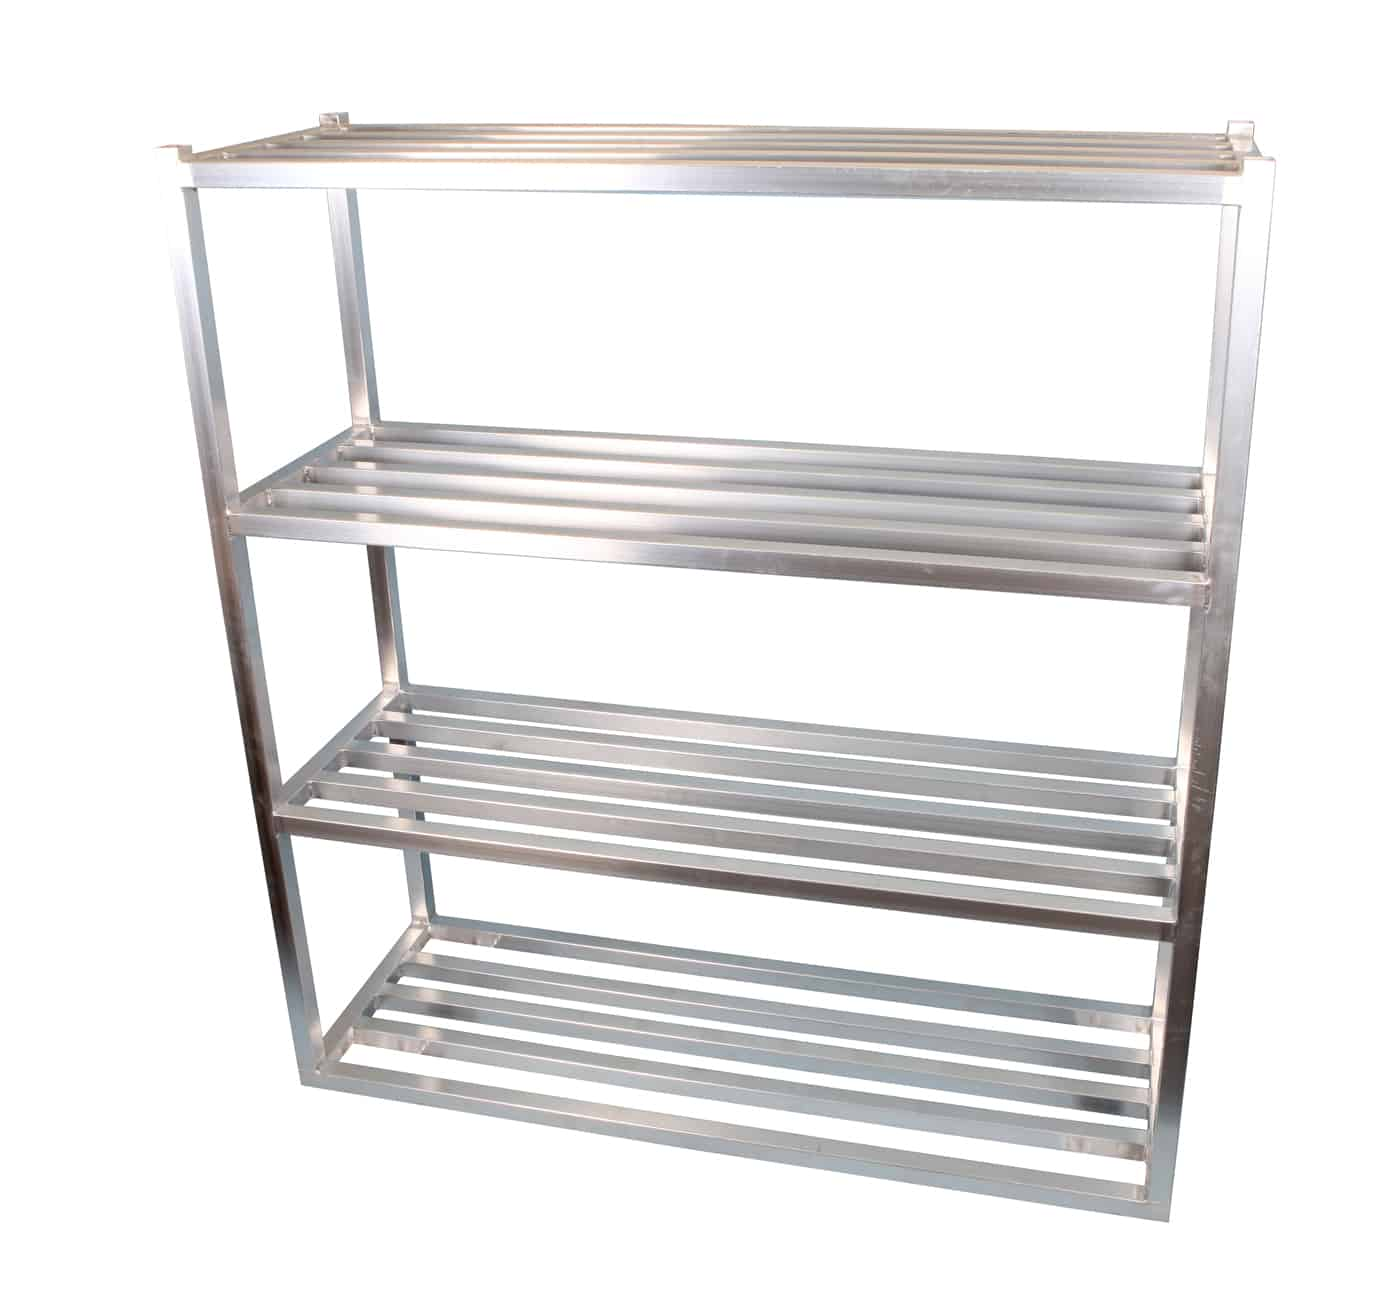 Pot Rack Stainless Steel Frame